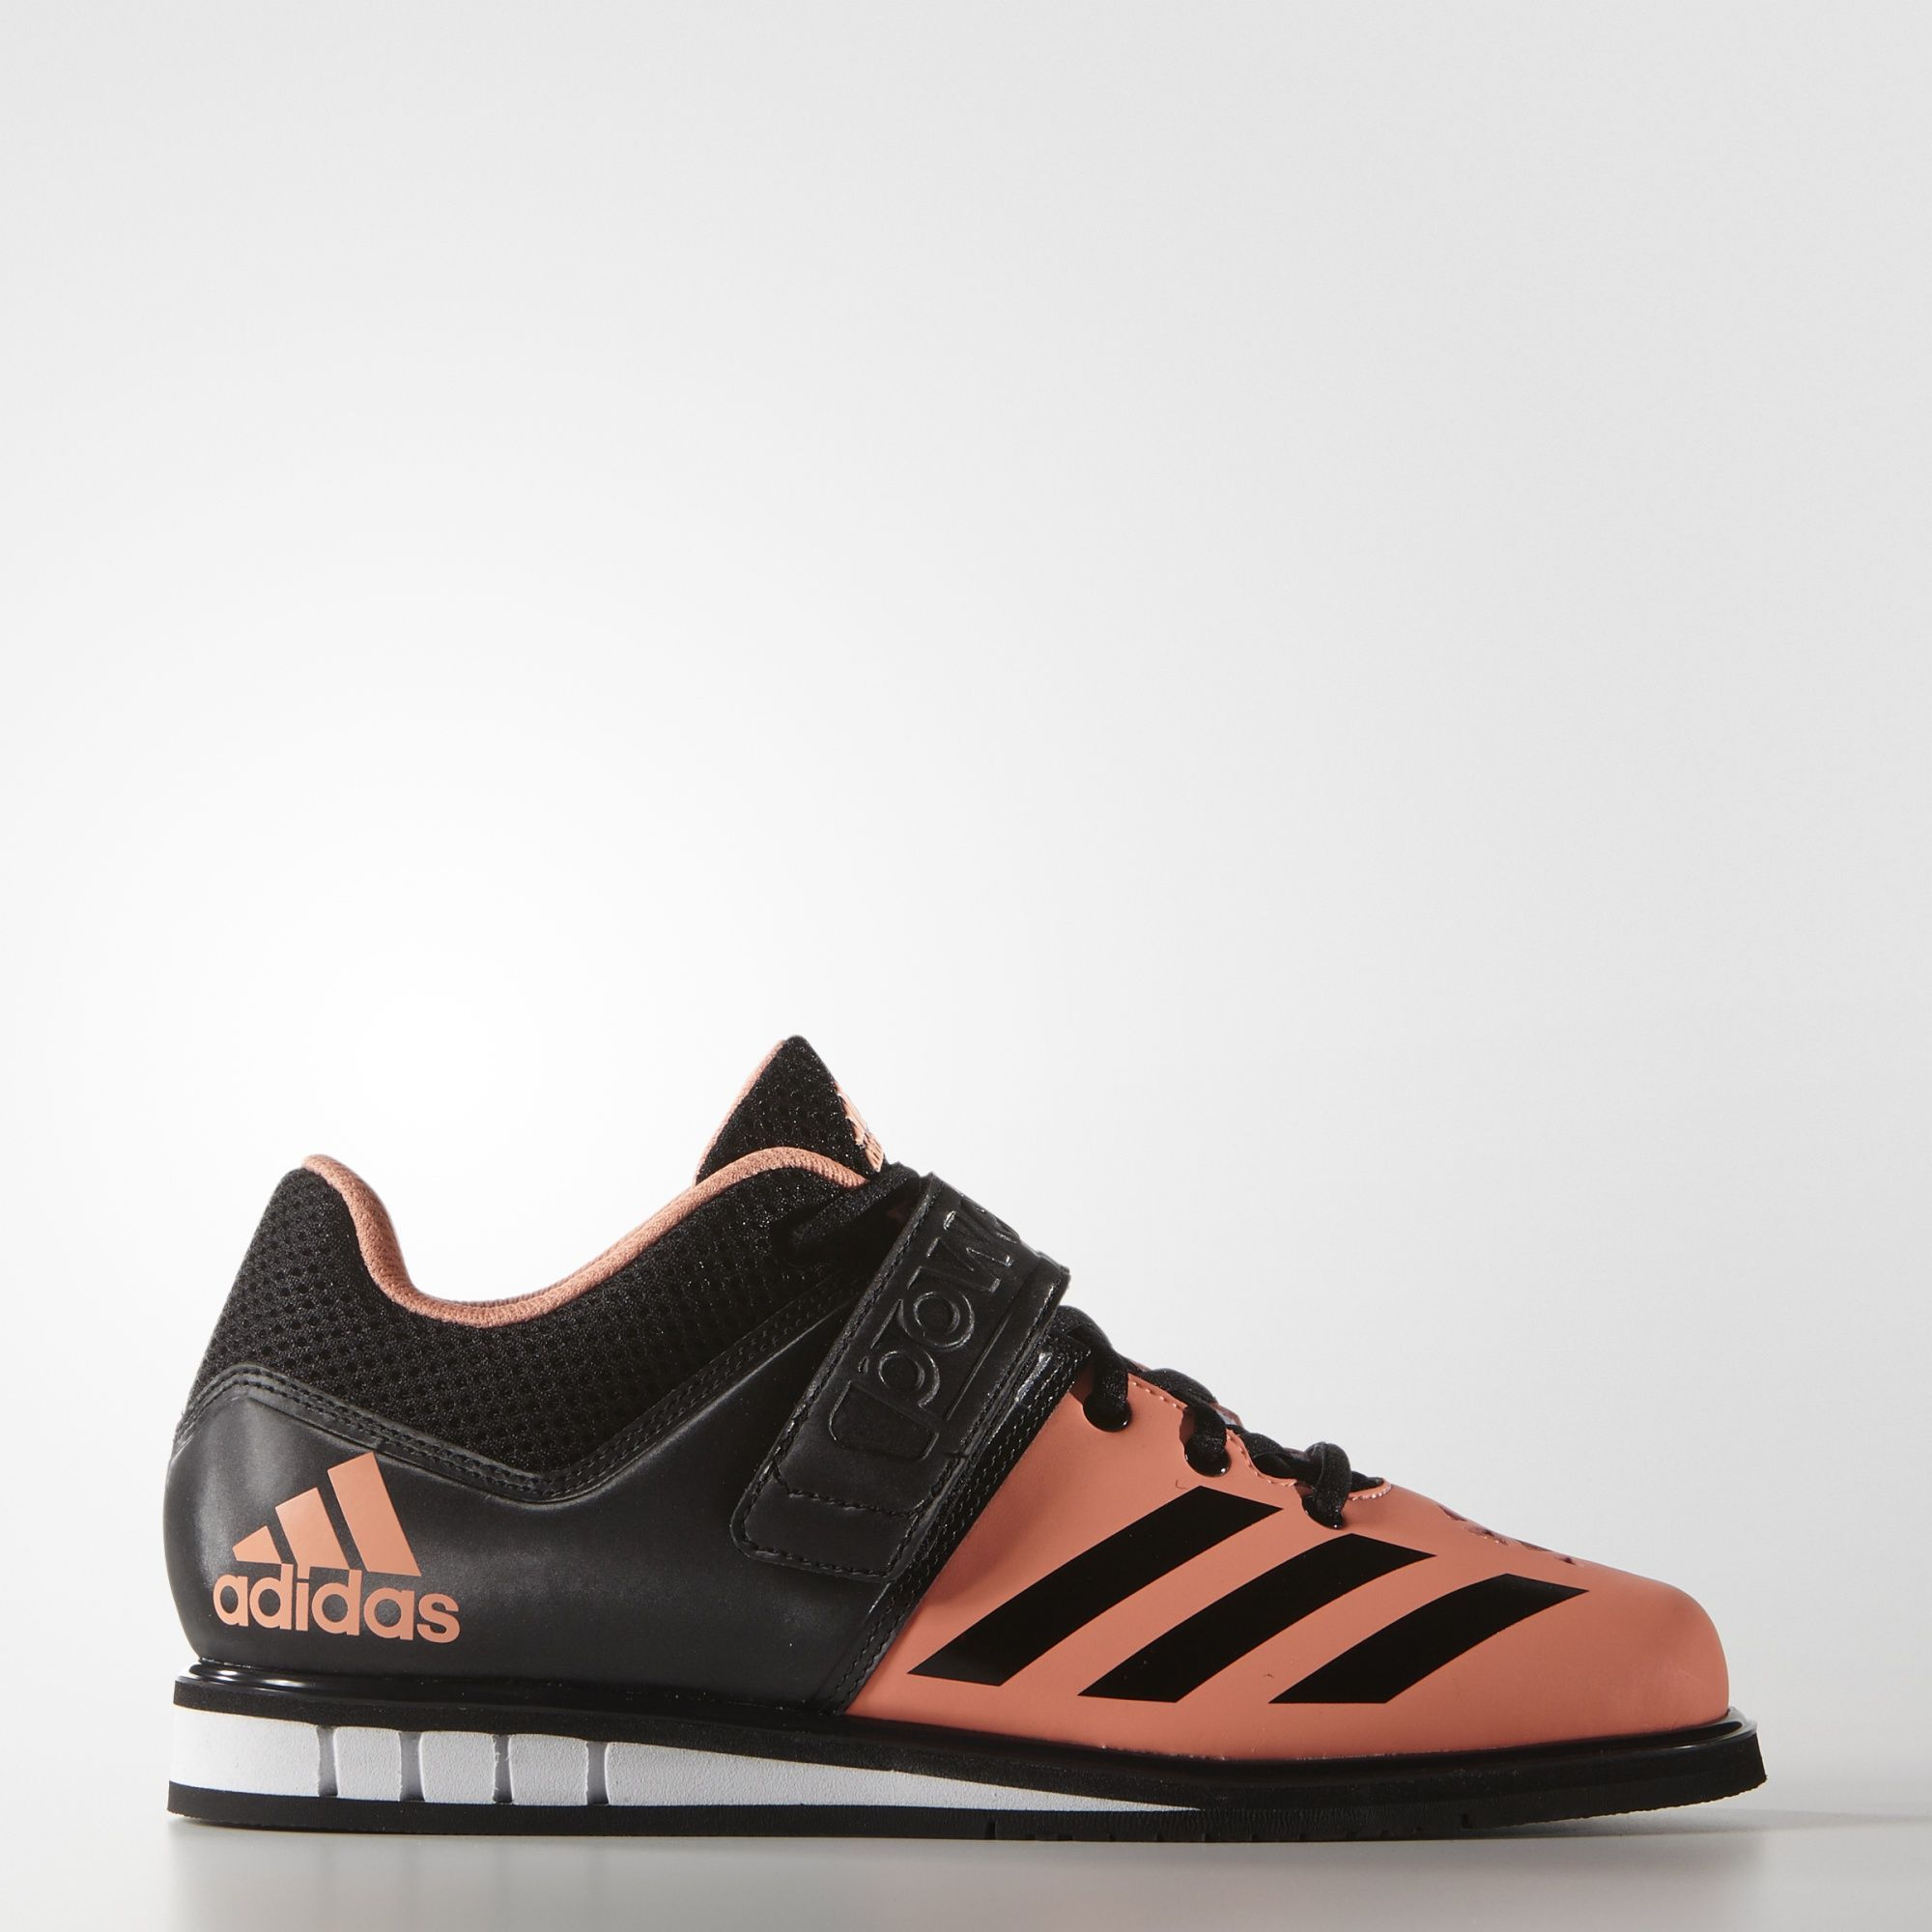 adidas Powerlift 3 Weightlifting schuhe